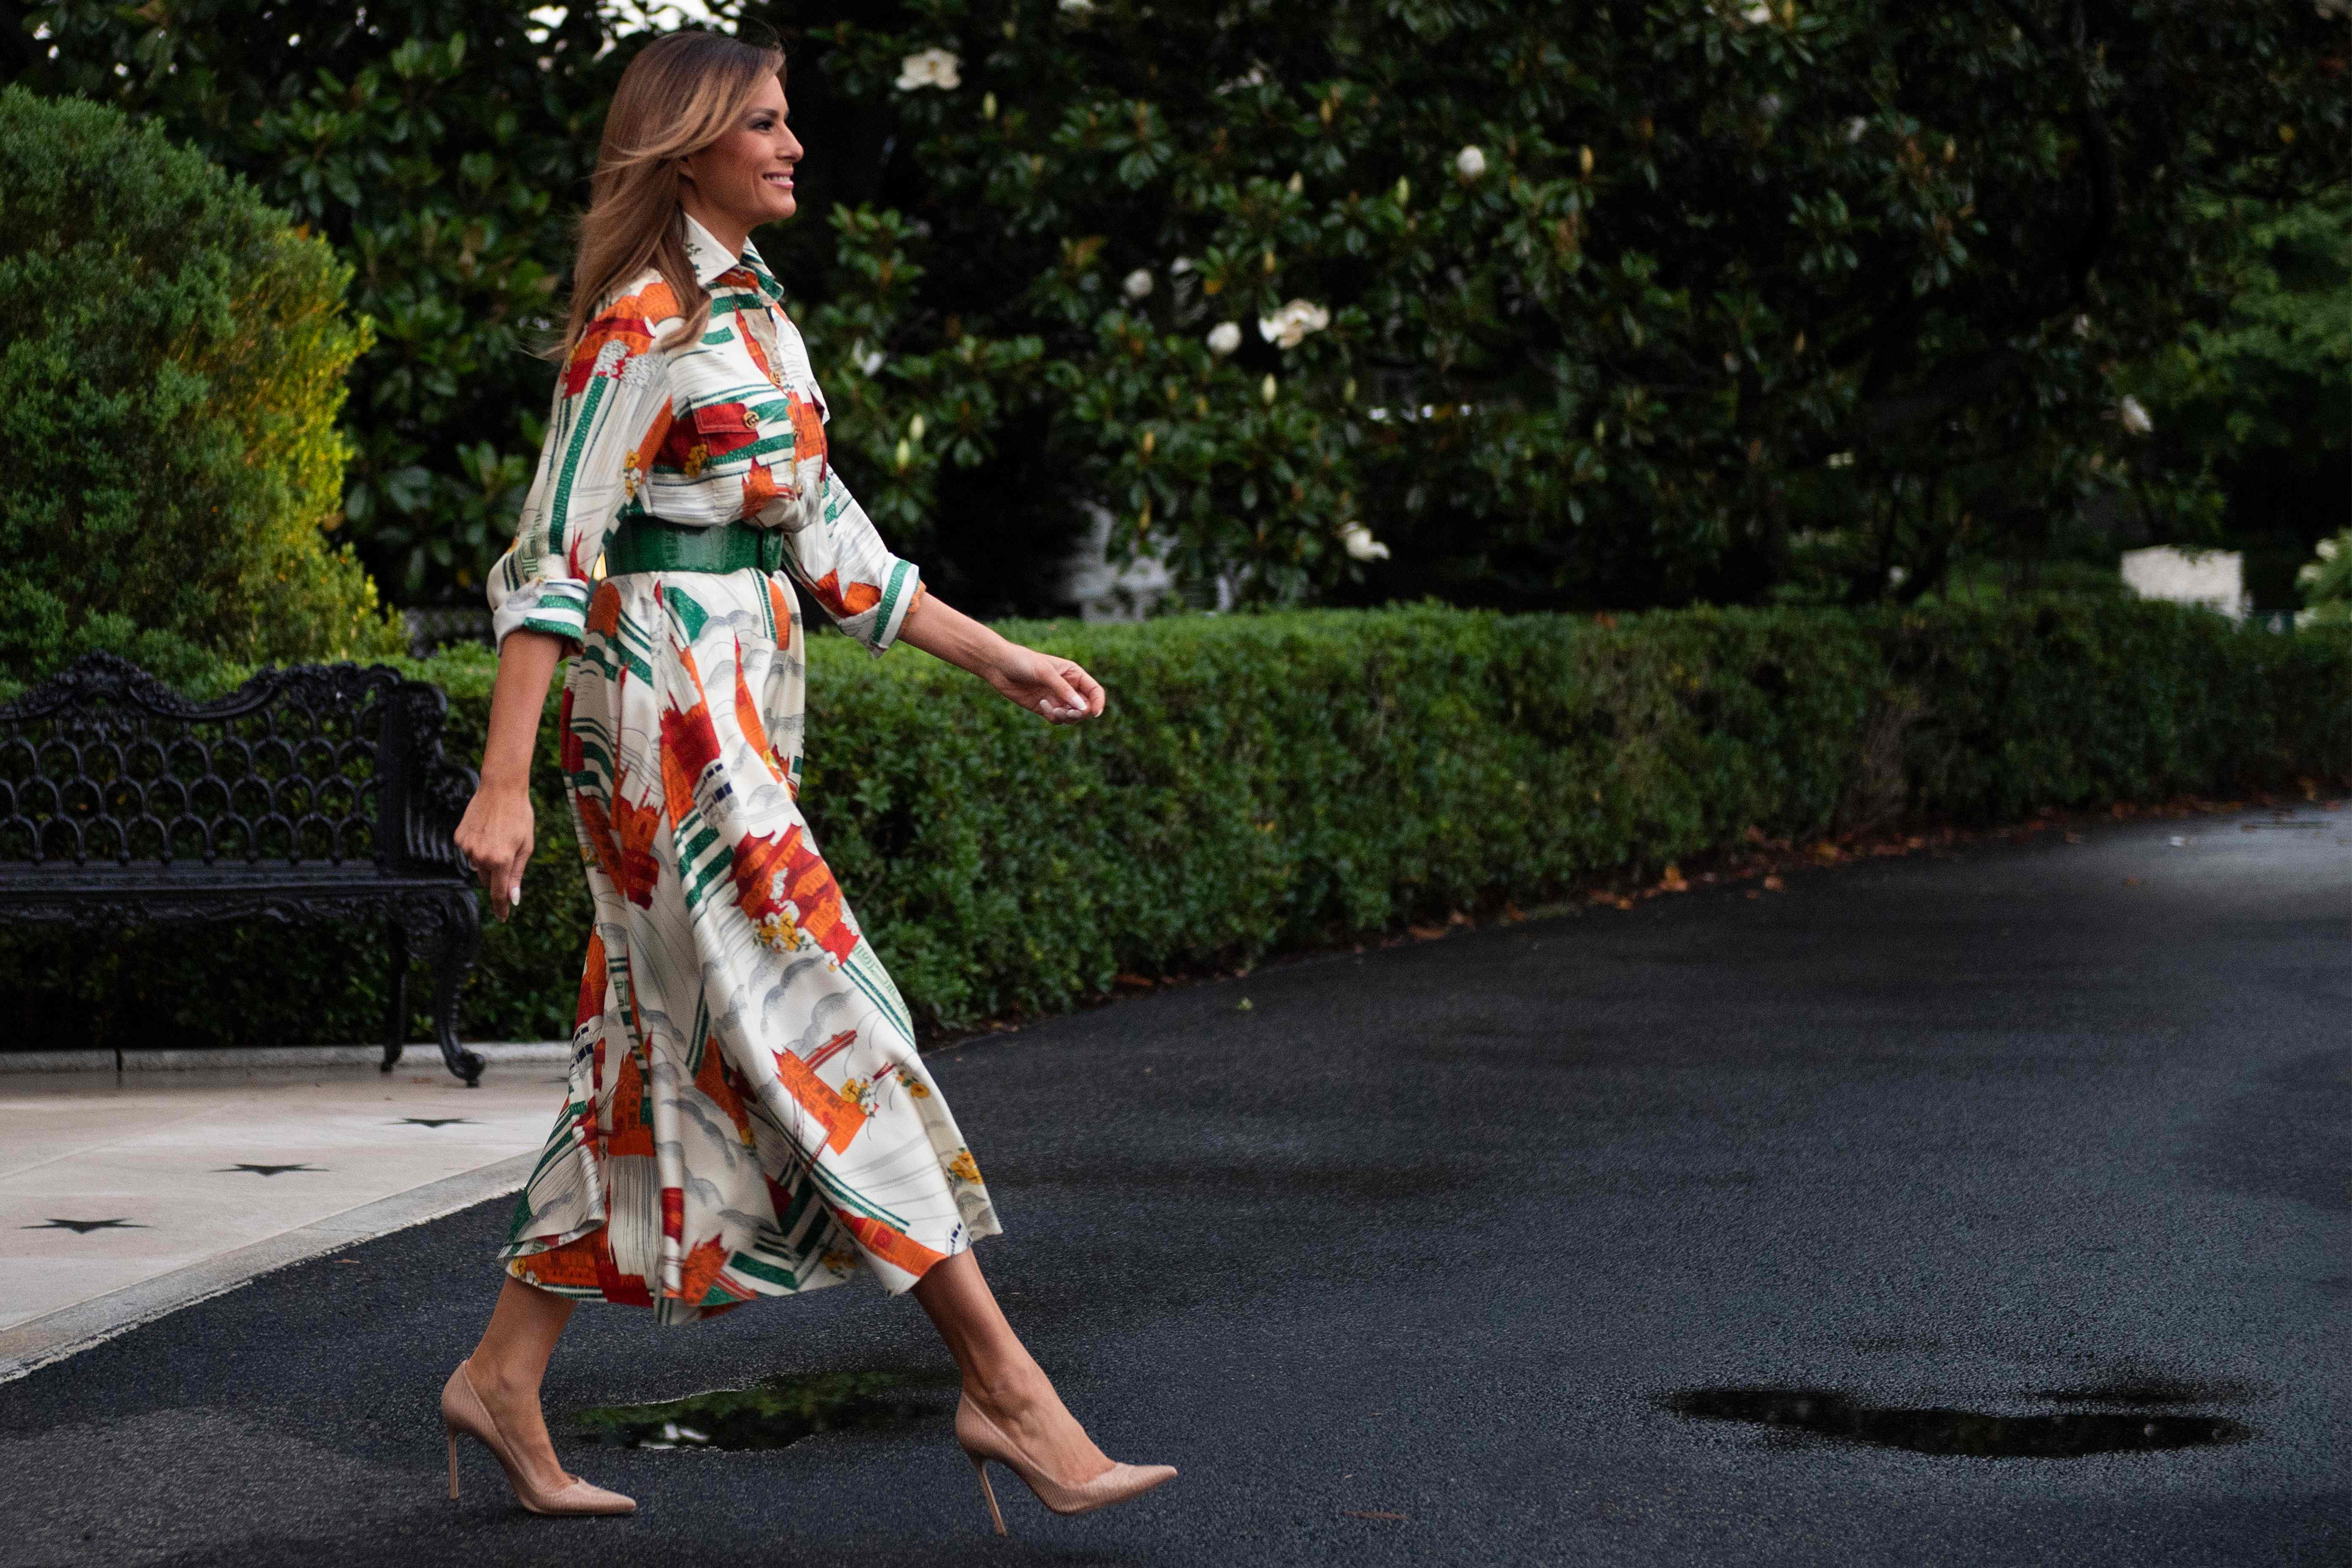 Melania Trump wore a Gucci dress printed with London landmarks on her way to the Capital